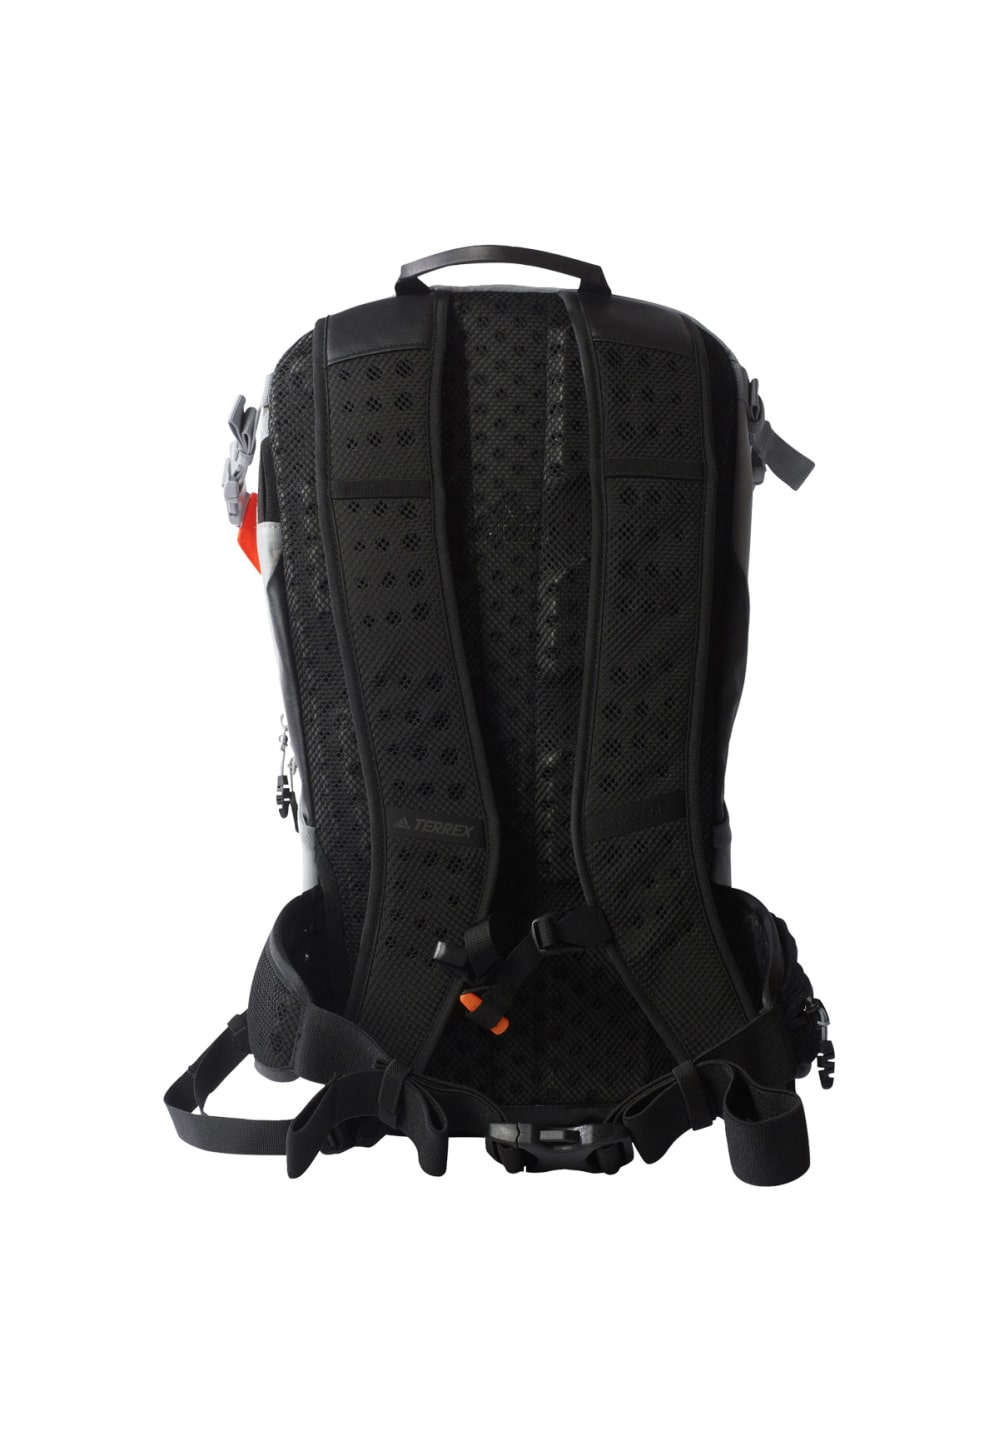 0b07524cf3 Next. This product is currently out of stock. adidas. TERREX Cross Trail  Backpack ...